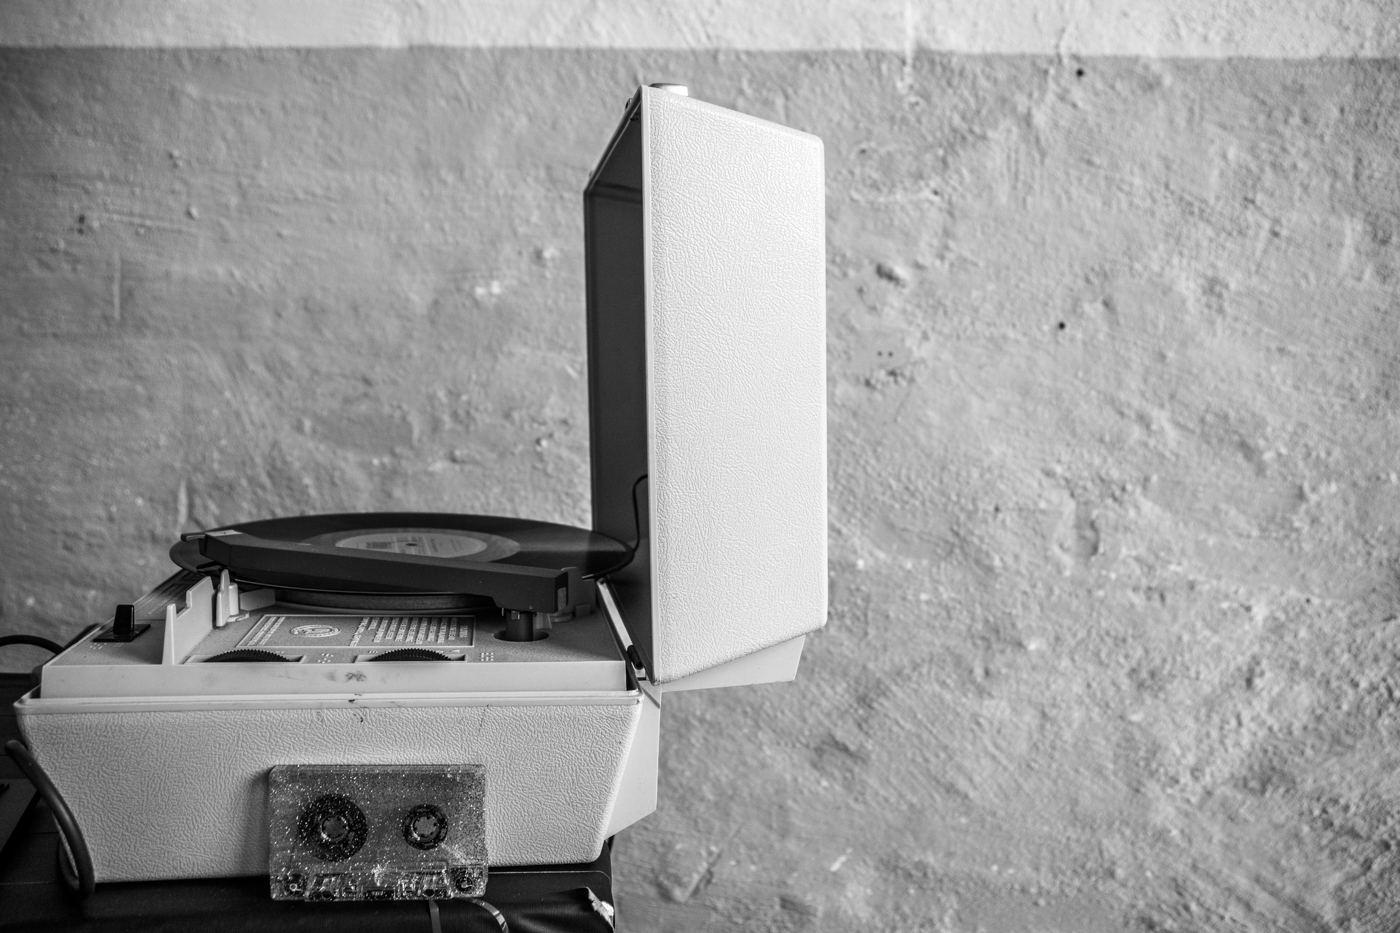 RECORD PLAYER FOR THE BLIND 14-06-2018- photo-Camilla Rehnstrand - bw-01217.jpg